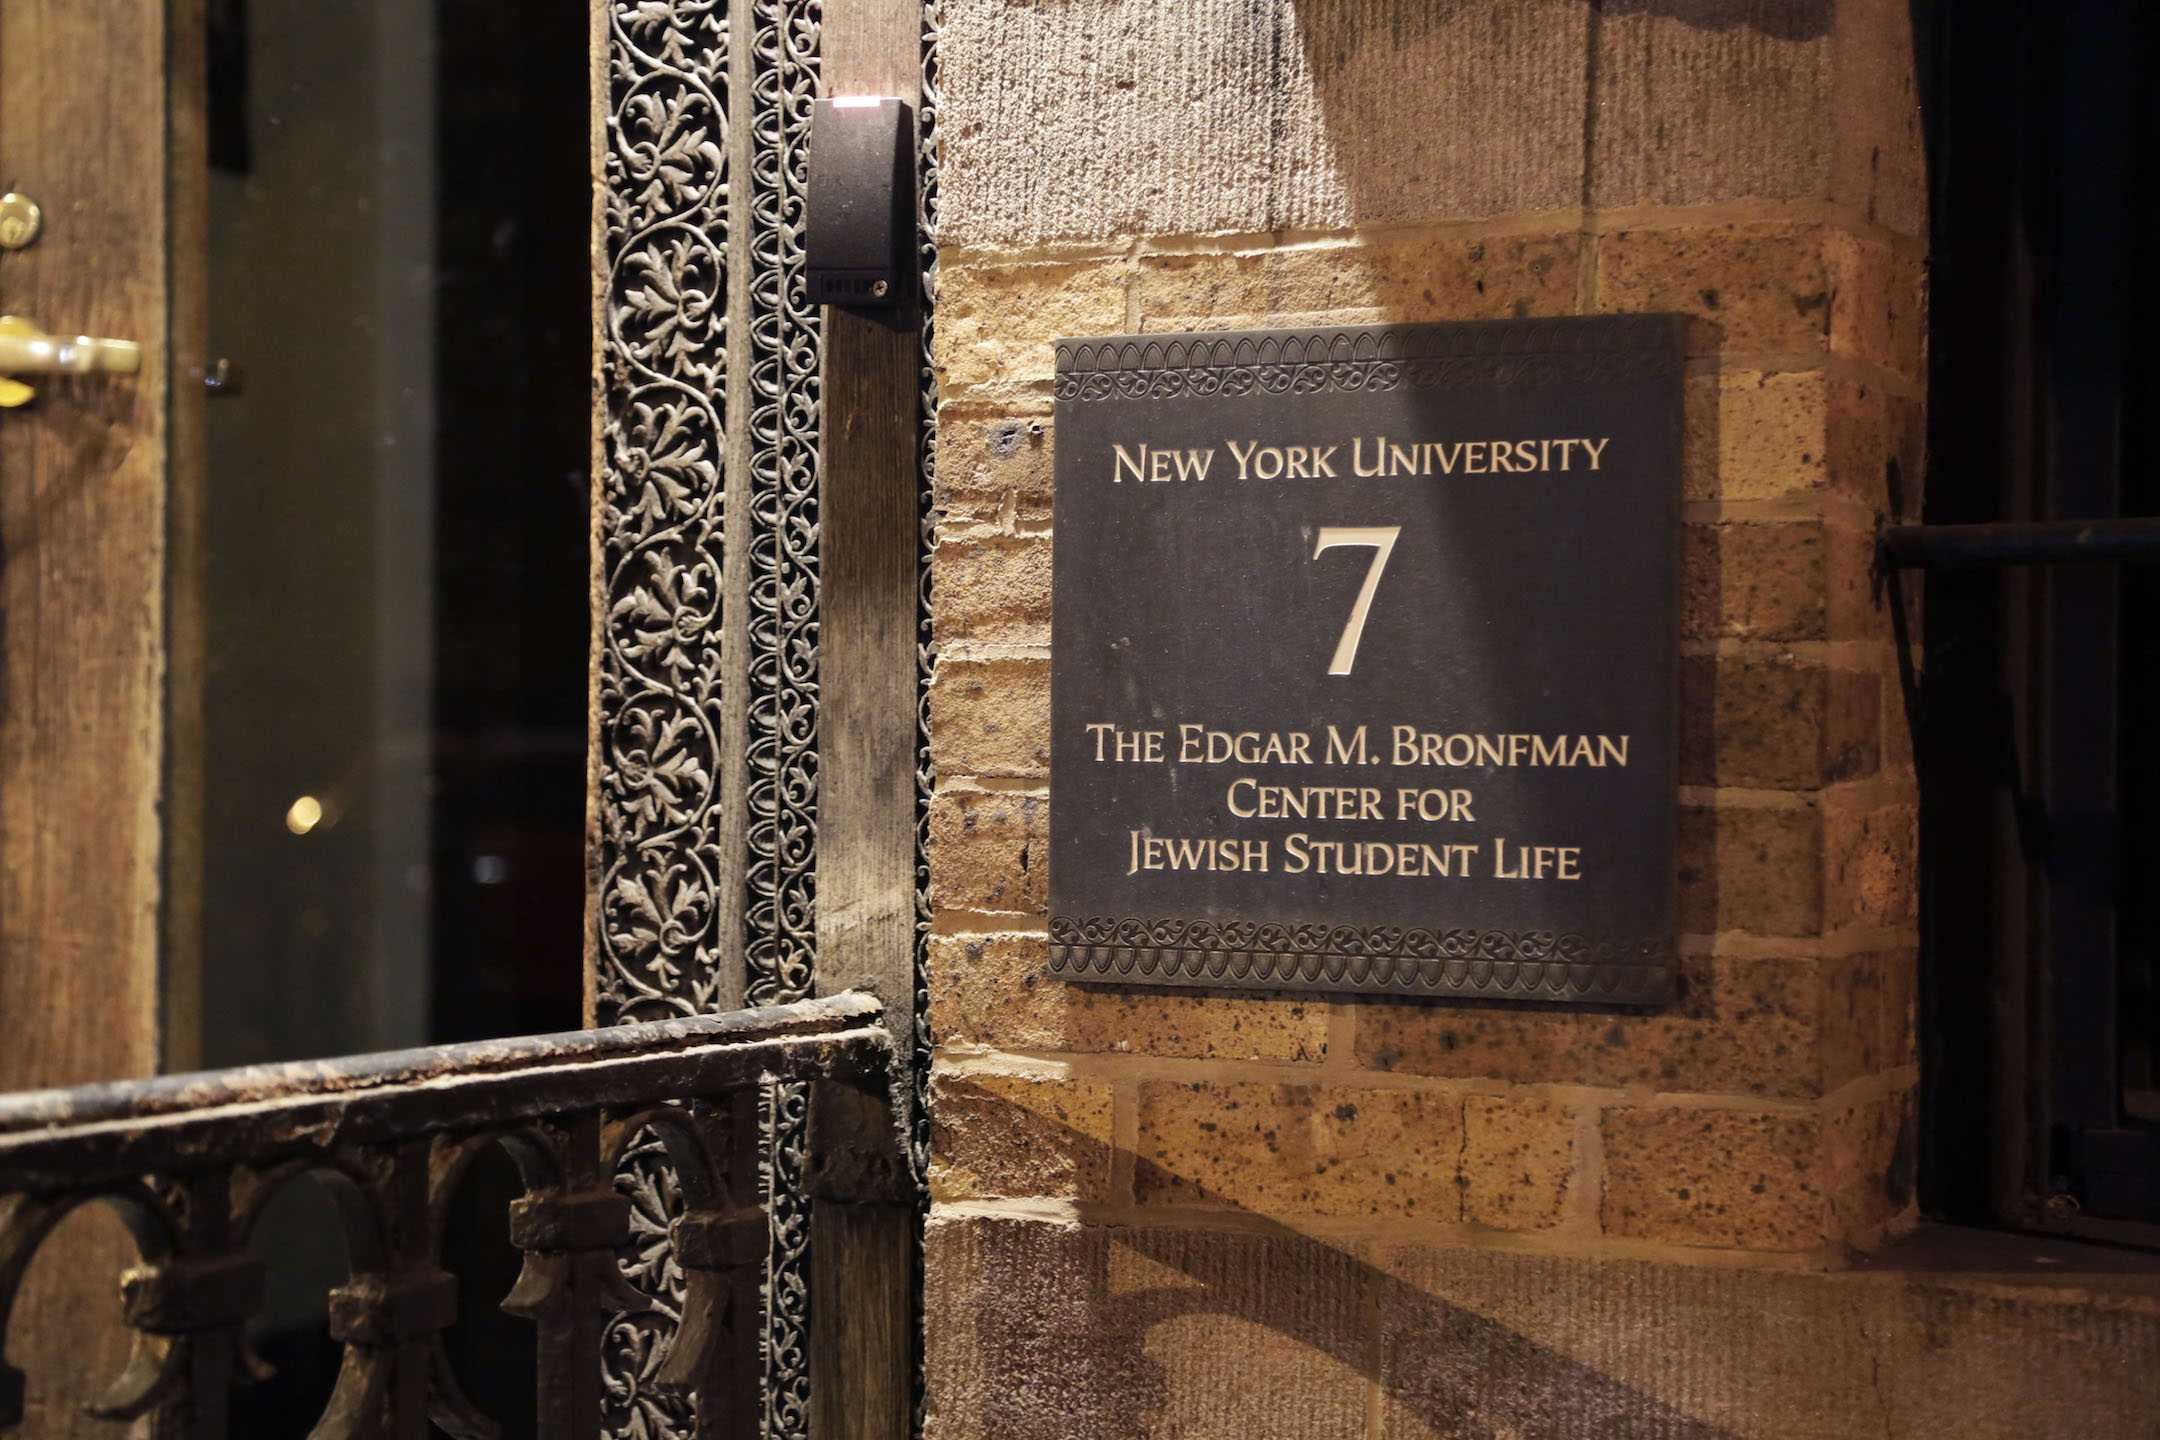 NYU student Leah Nouriyelian has created a petition to convince NYU's University Senate to vote against the current academic calendar in order to observe Jewish High Holy Days.